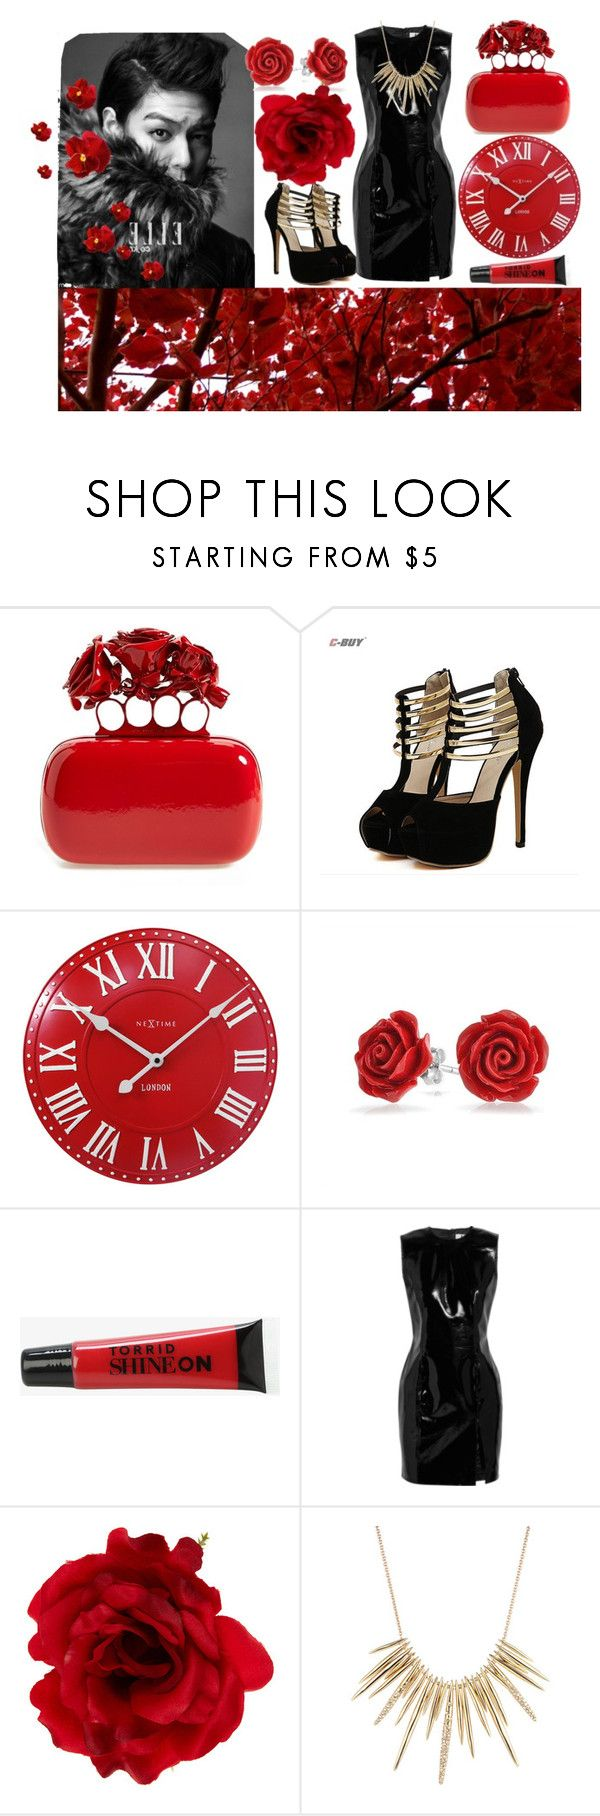 """heartbreaker 💋💔"" by alieksandra ❤ liked on Polyvore featuring Alexander McQueen, NeXtime, Bling Jewelry, Torrid, Topshop Unique, Accessorize and Alexis Bittar"